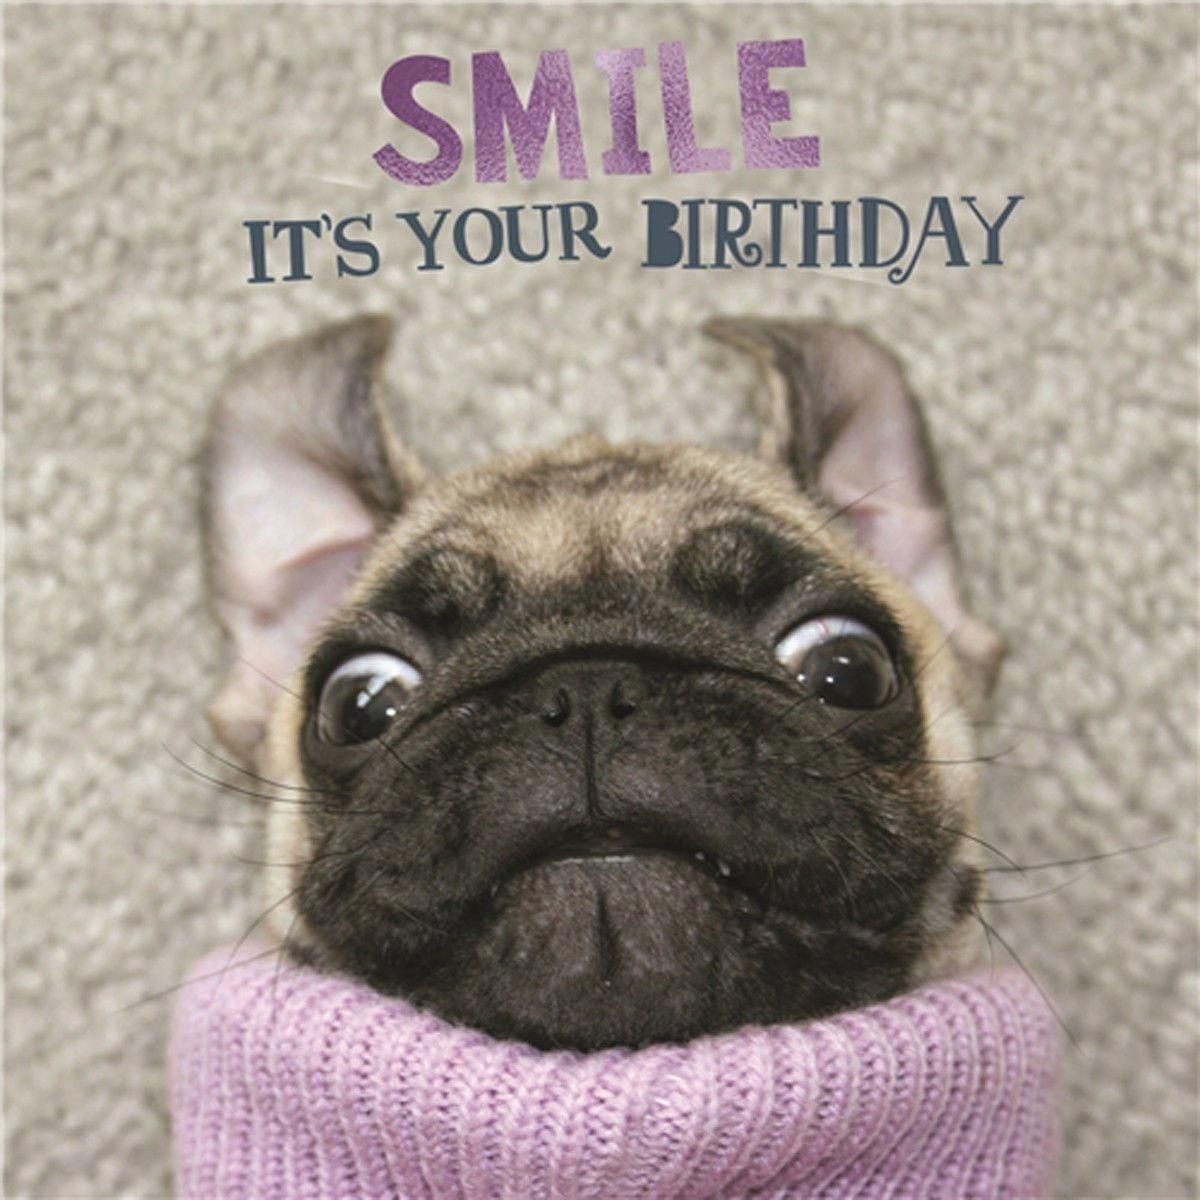 Outstanding Pug Dogs Detail Is Offered On Our Site Have A Look And You Wont Be Sorry You Did Birthday Greetings Funny Birthday Wishes Funny Happy Birthday Pug